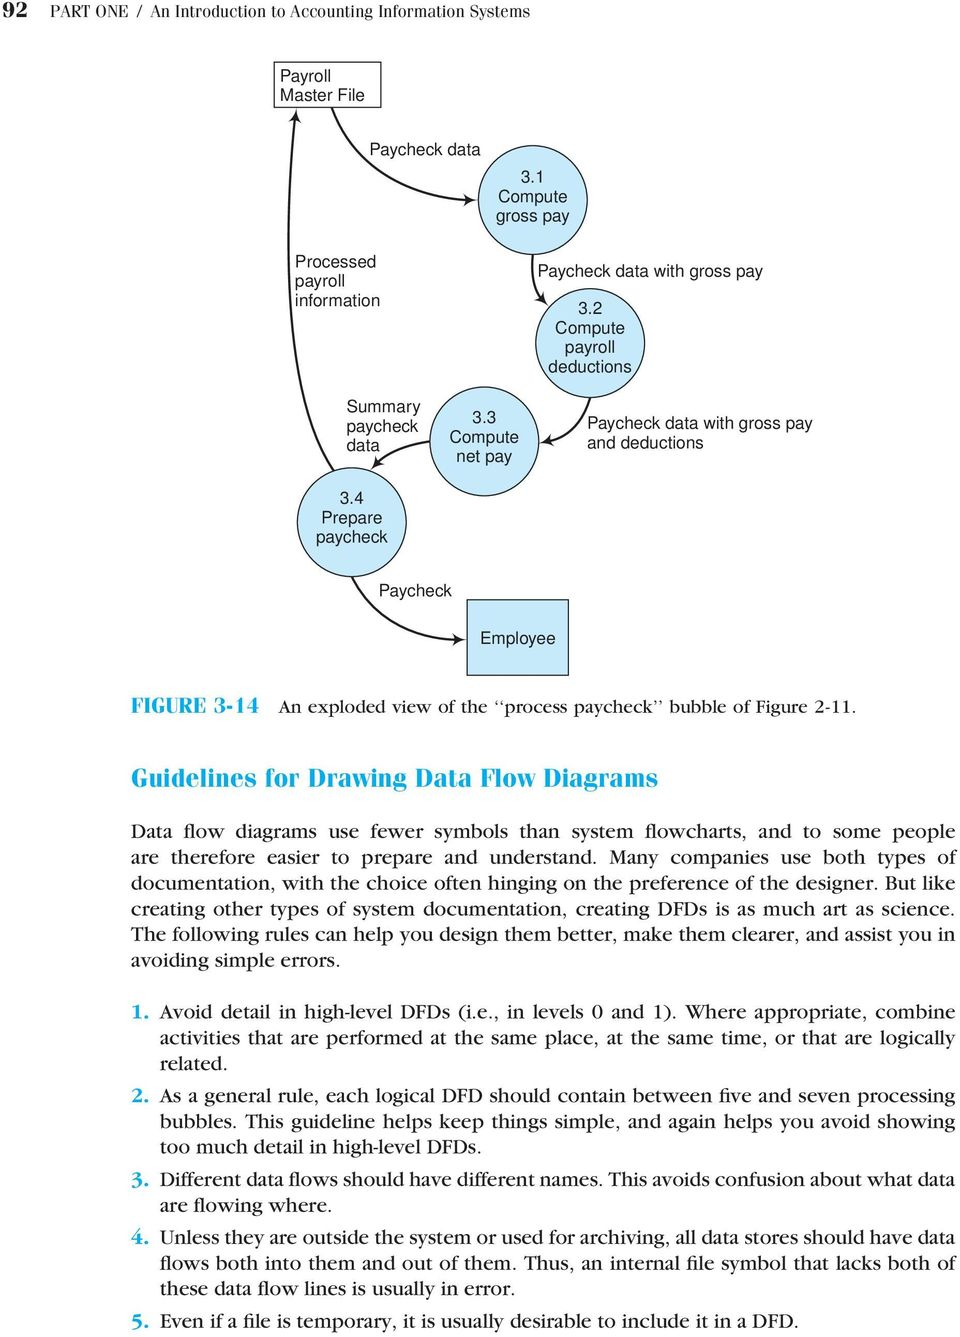 Chapter 3 Documenting Accounting Information Systems Pdf